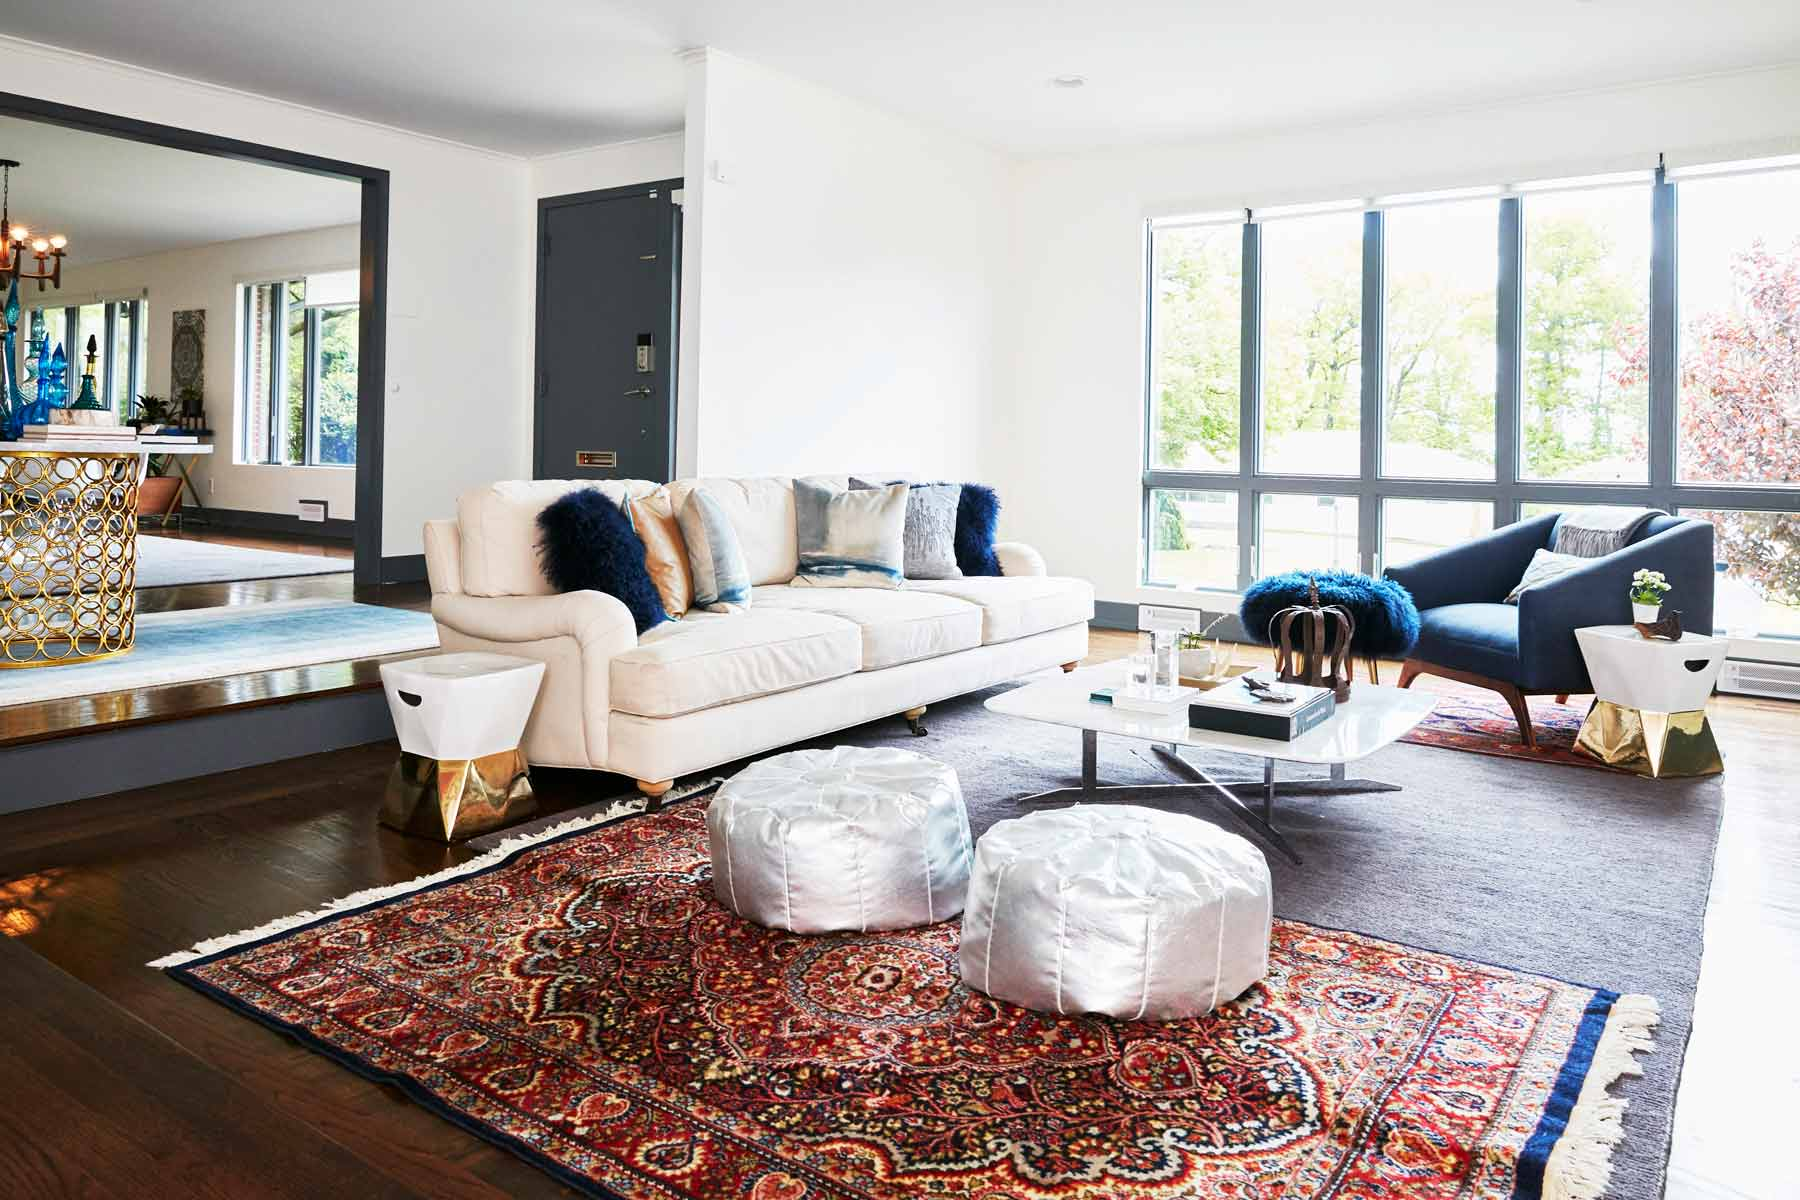 Nureed saeed's sunken family room in her mid-century modern home. Located in South Orange, NJ